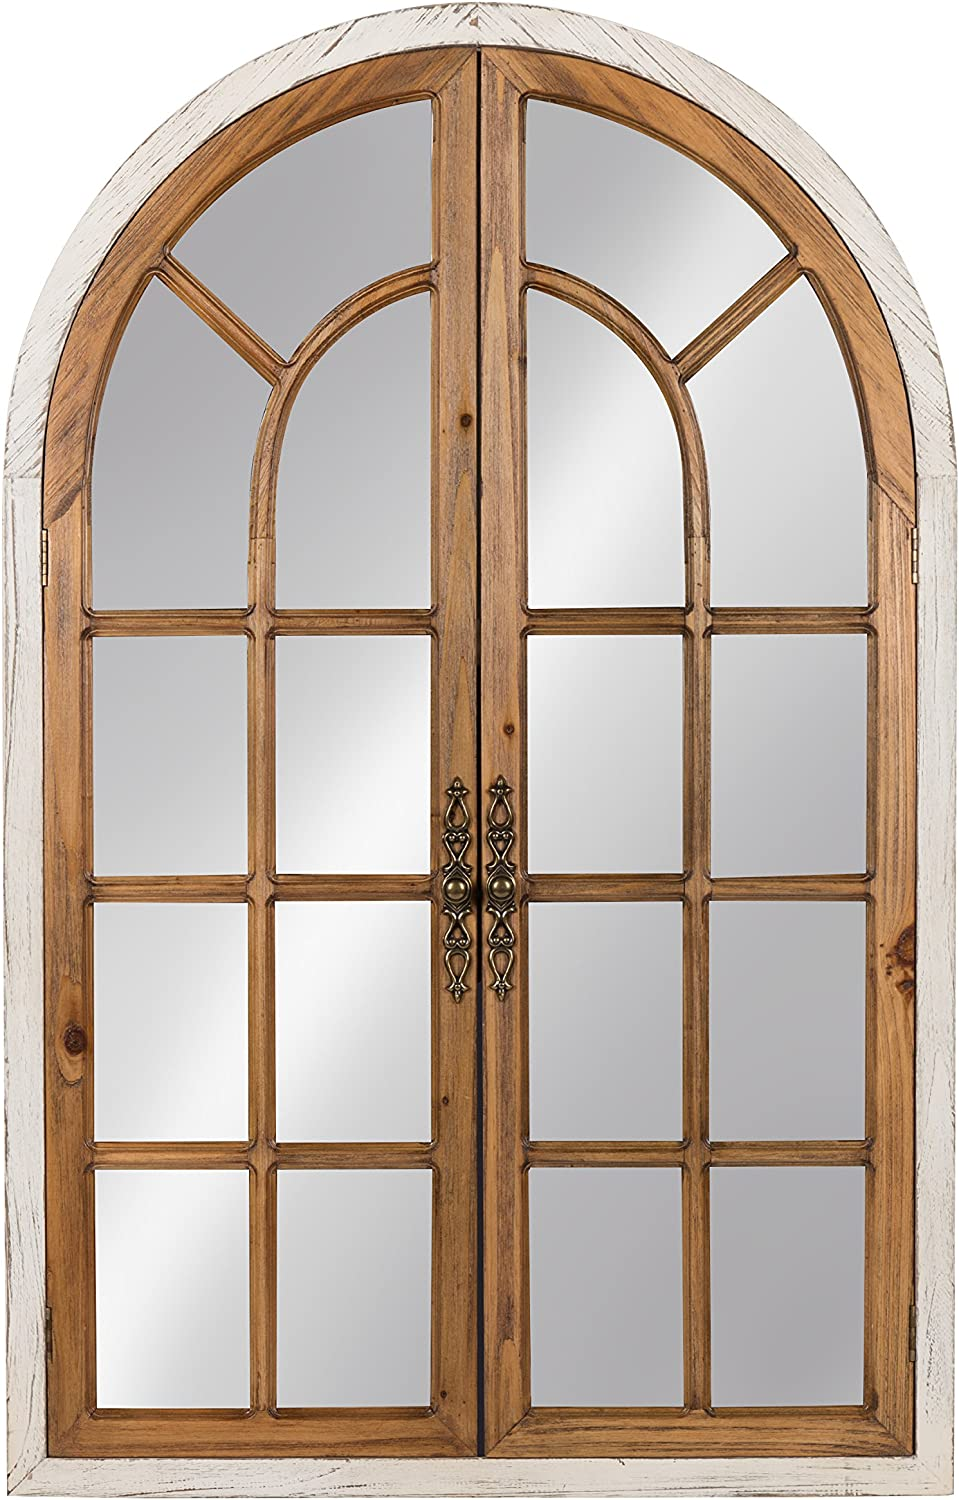 Kate and Laurel Boldmere Wood Windowpane Arch Mirror, 28x44, White